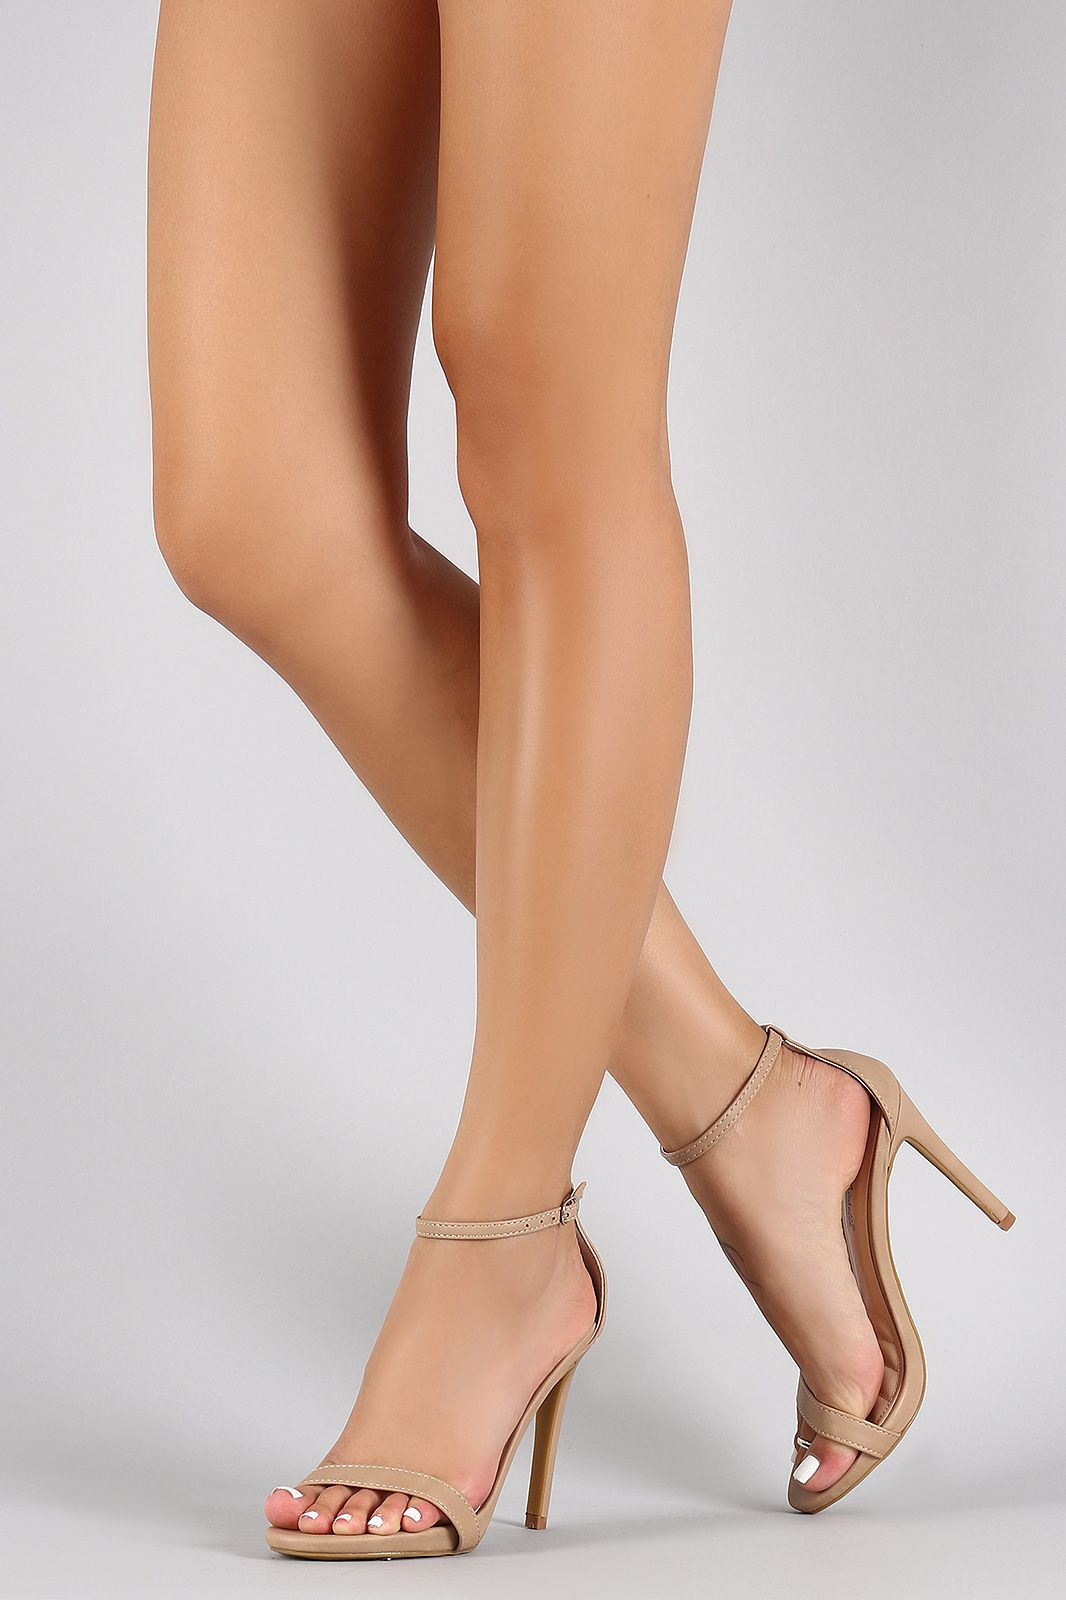 1a39e8481fa Anne Michelle Ankle Strap Open Toe Stiletto Heel. This lovely open toe heel  features a